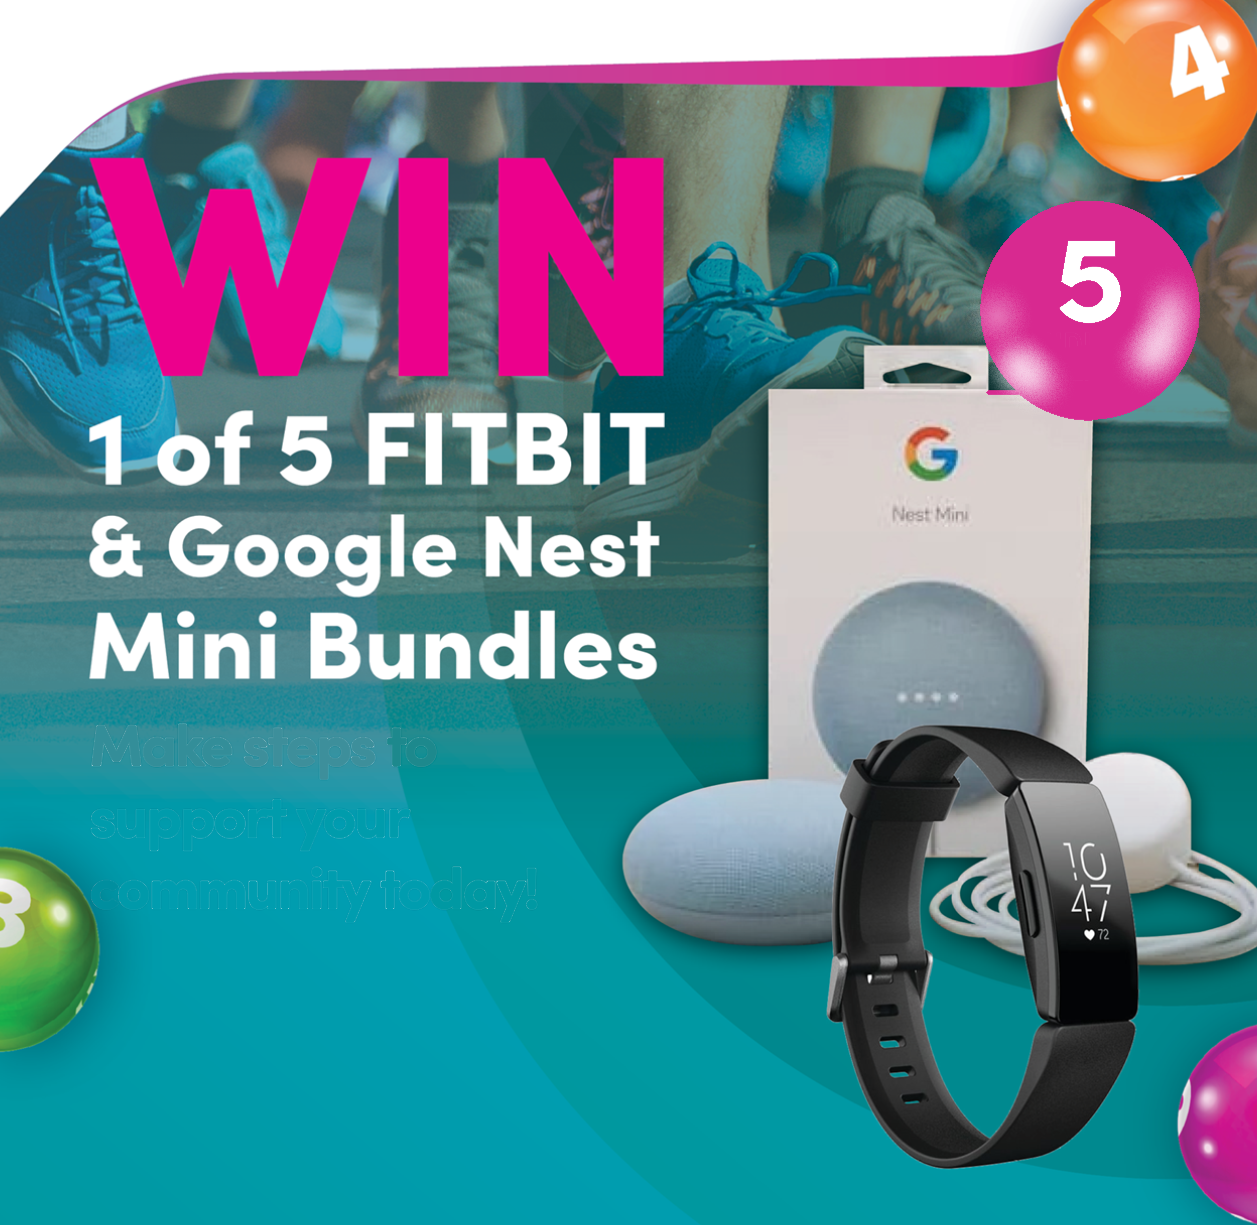 WIN 1 of 5 FITBIT & Google Nest Mini Bundles